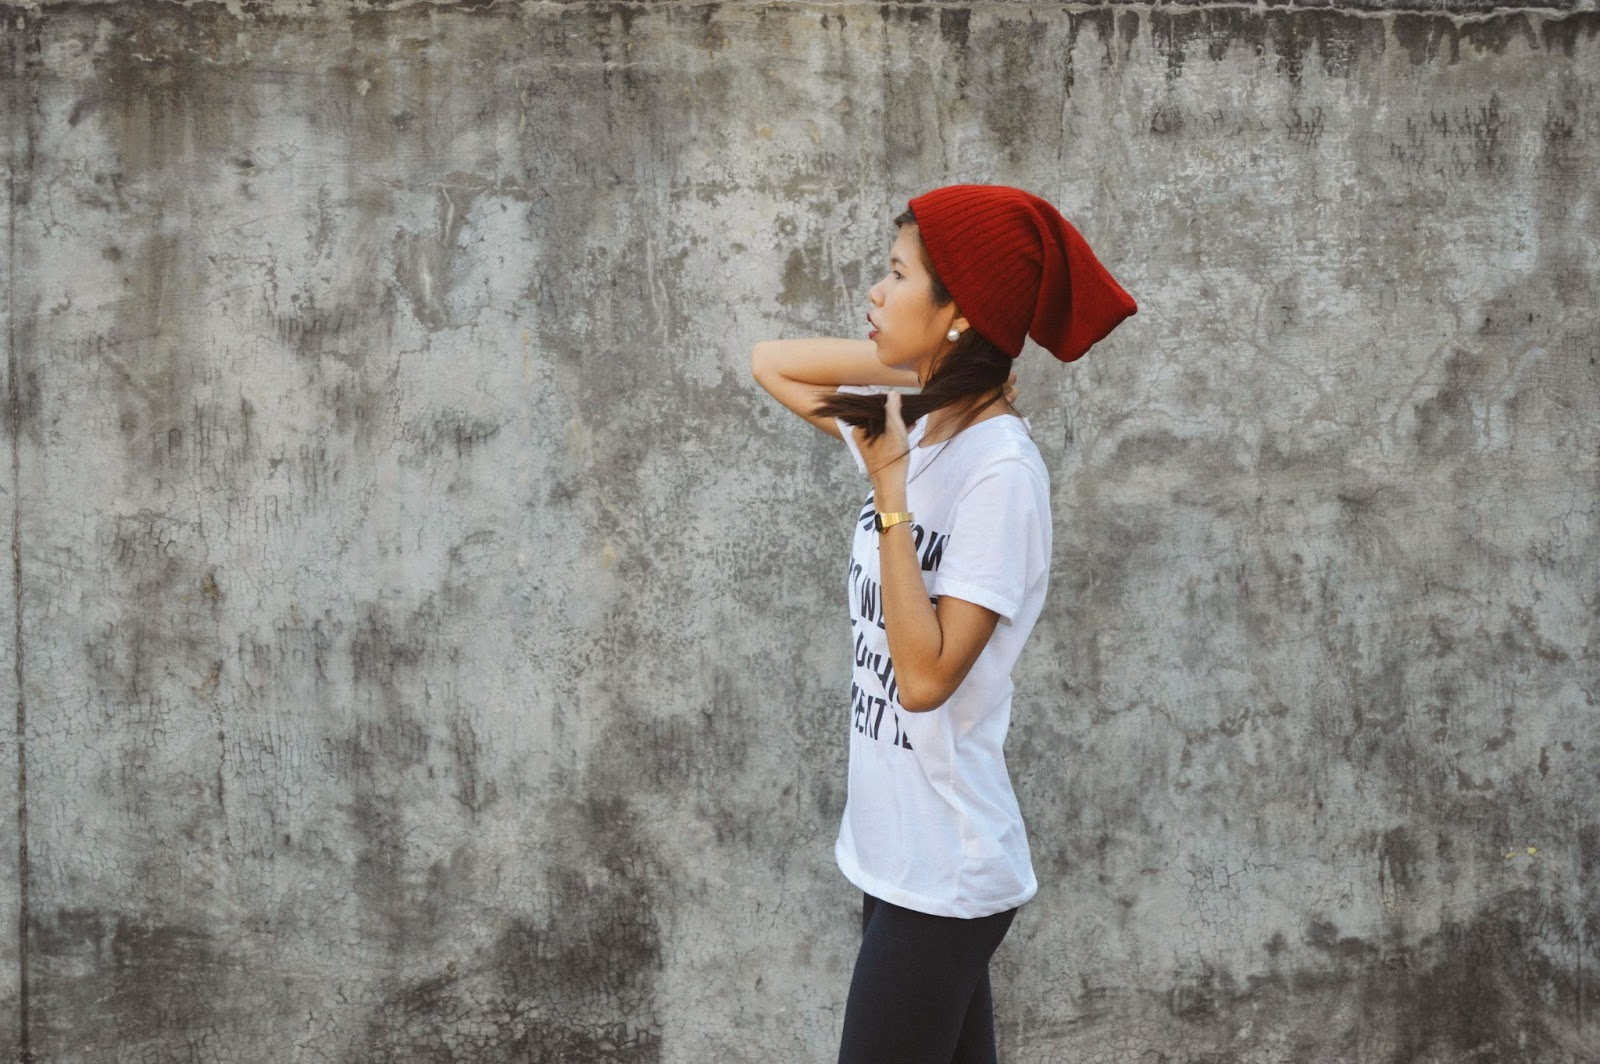 Folded and Hung, fashion blogger, style blogger, cebu blogger, cebu style blogger, blogger, filipina blogger, cebuana blogger, nested thoughts, katherine cutar, katherine anne cutar, katherineanika, katherine annika, ootd, ootd pilipinas, basic ph, basic fashion, basics, basic, basic cebu, statement tee, statement t-shirt, edgy look,